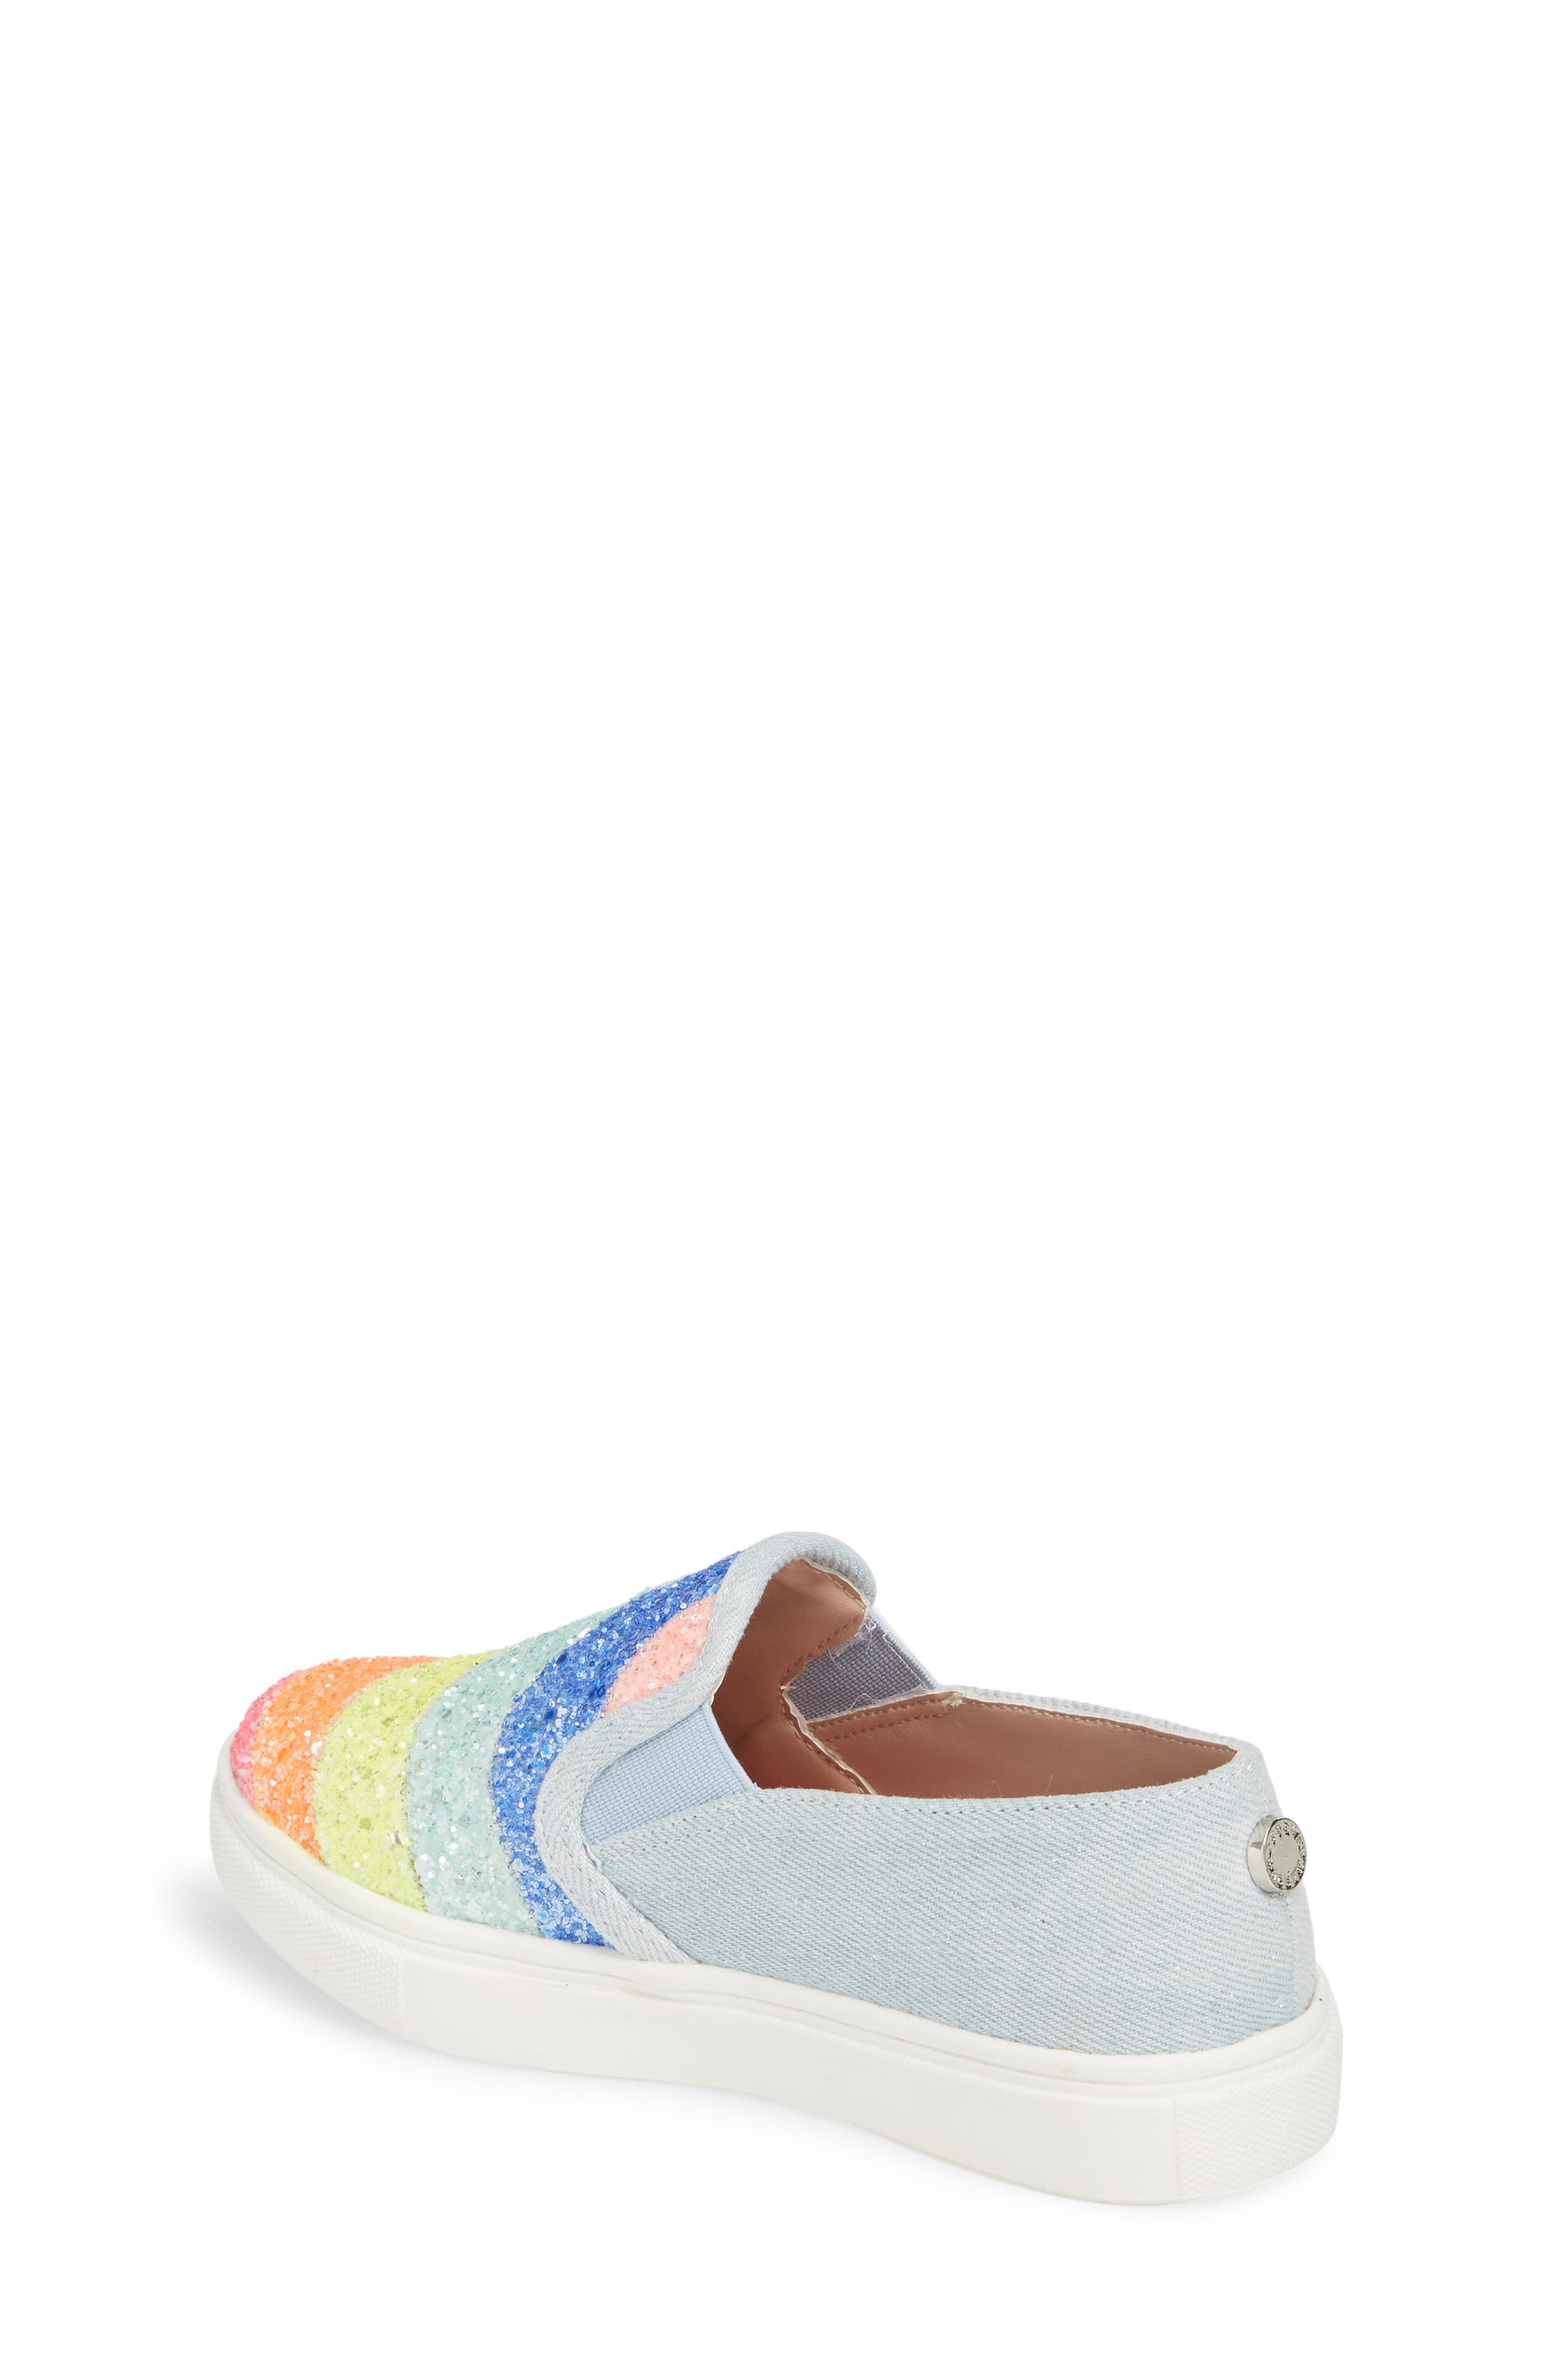 JWISH Rainbow Slip-On Sneaker,                             Alternate thumbnail 2, color,                             650